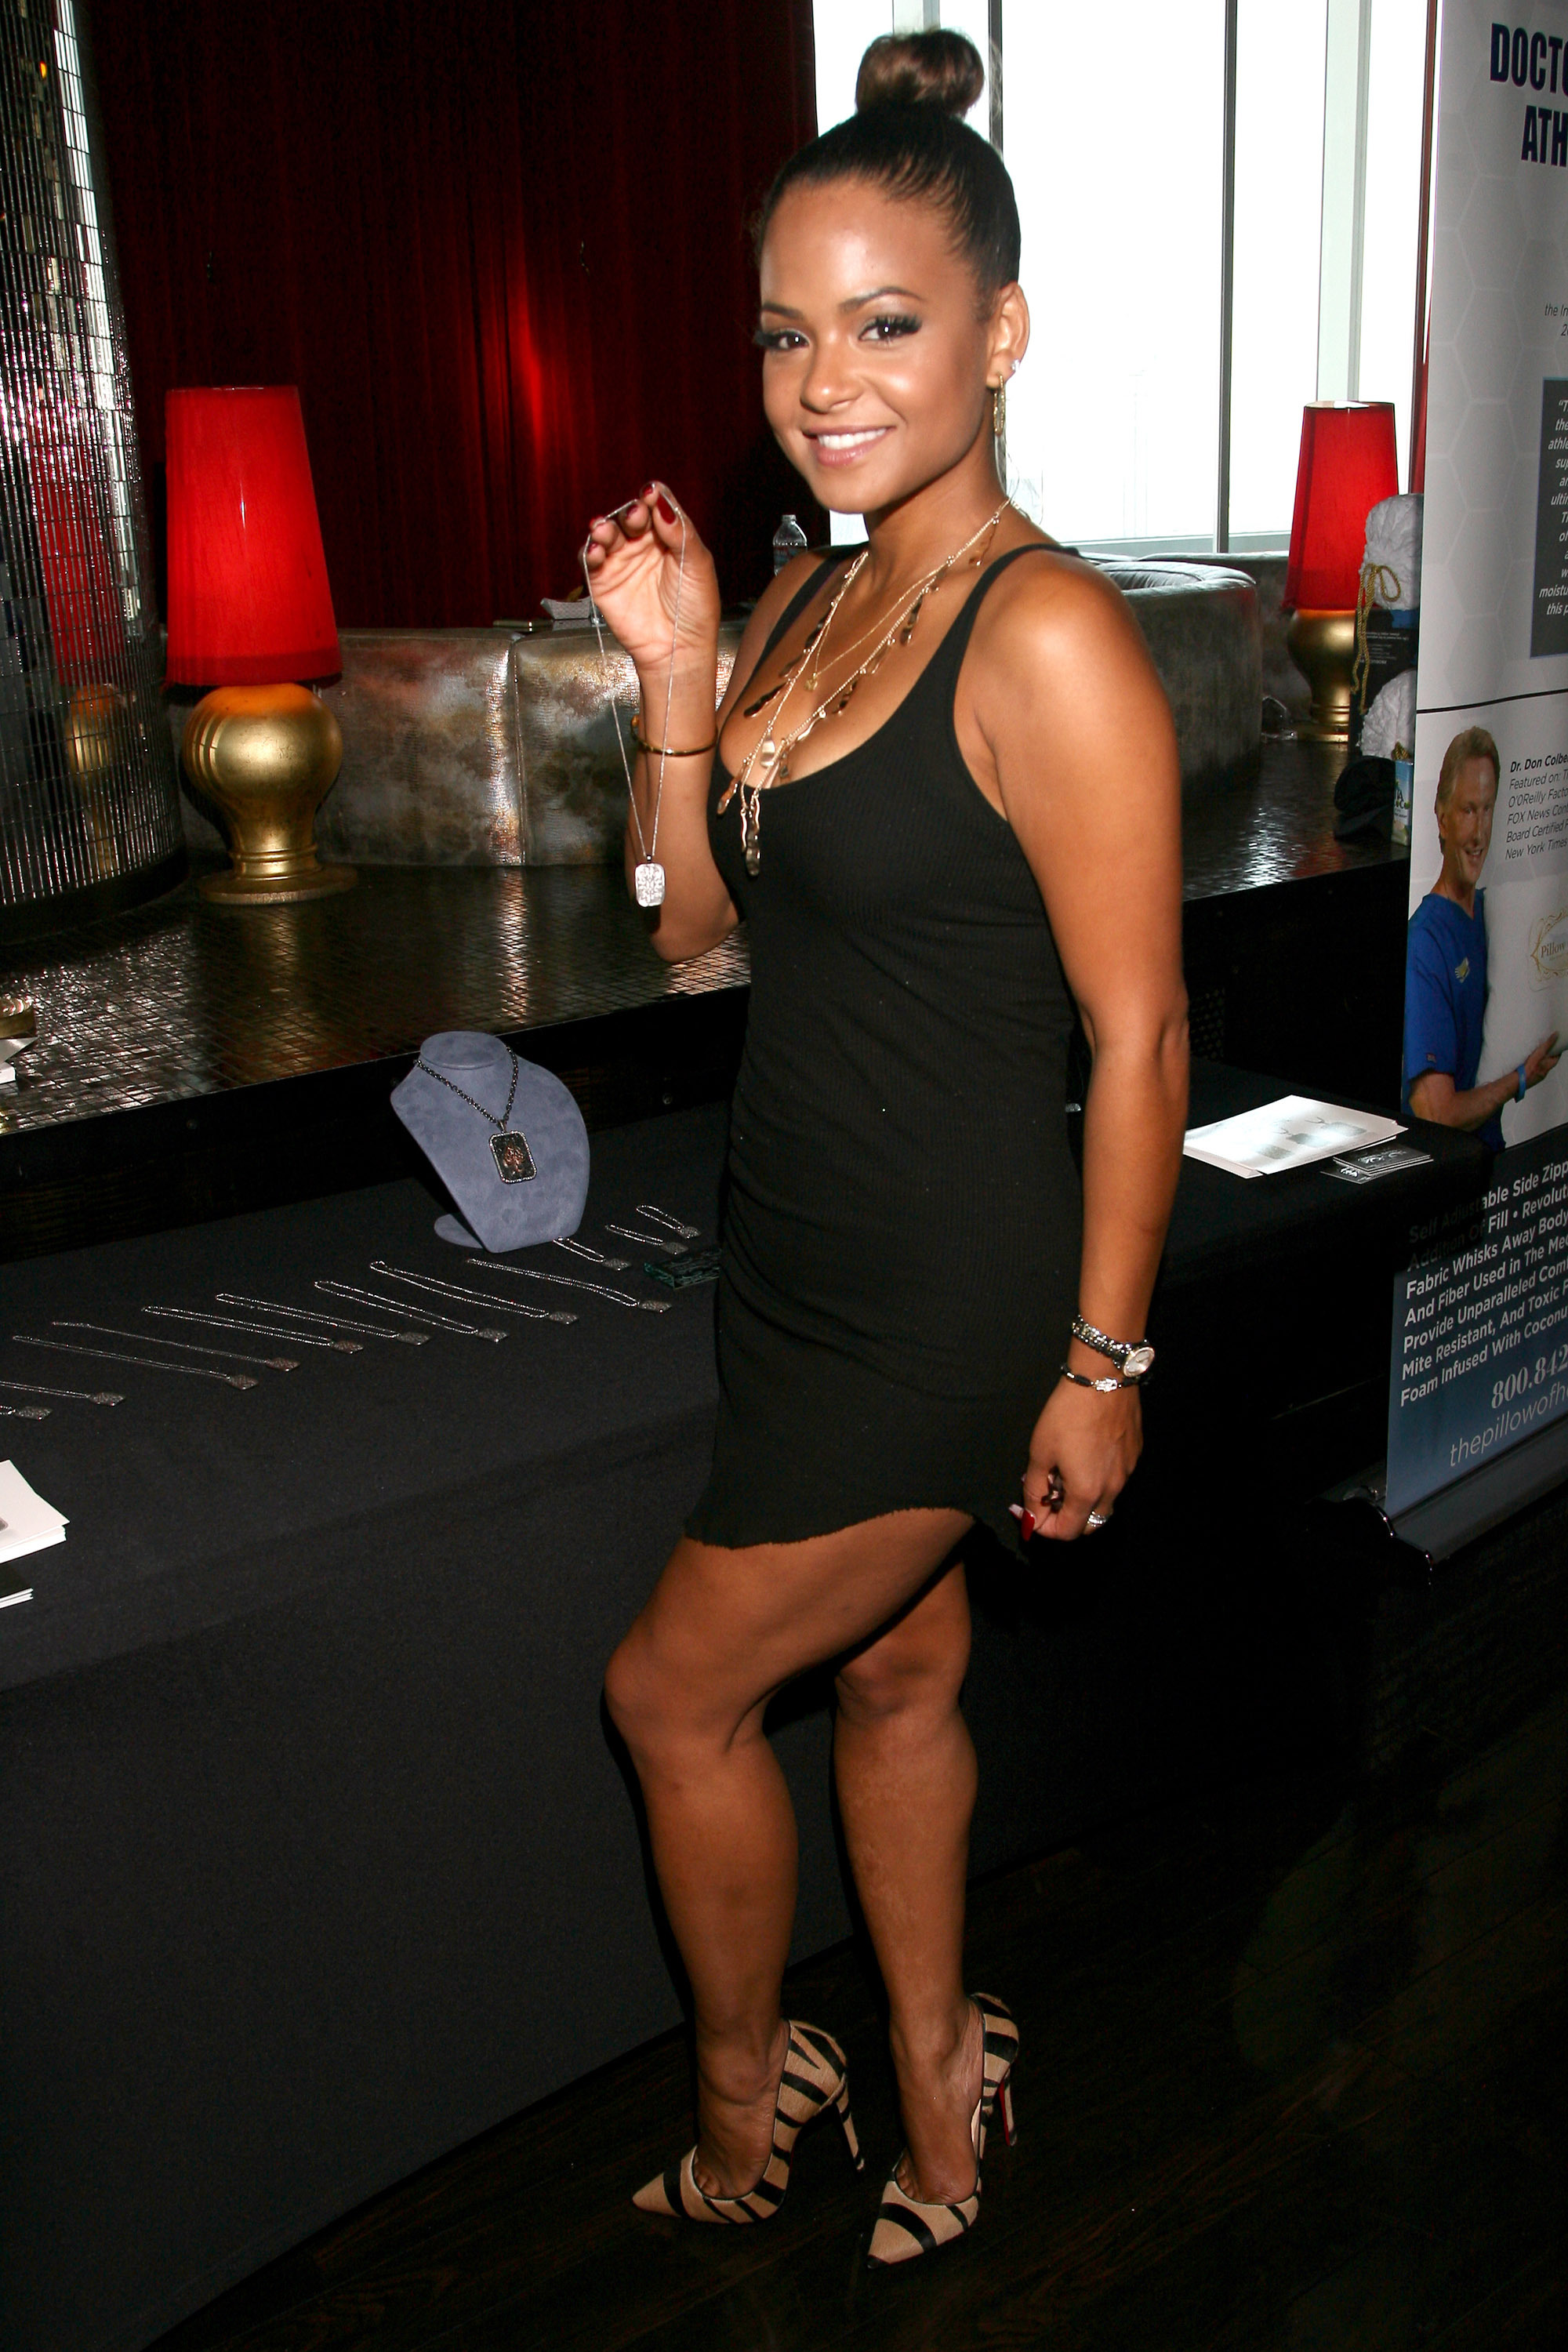 Christina Milian Photo 1693 Of 2470 Pics Wallpaper